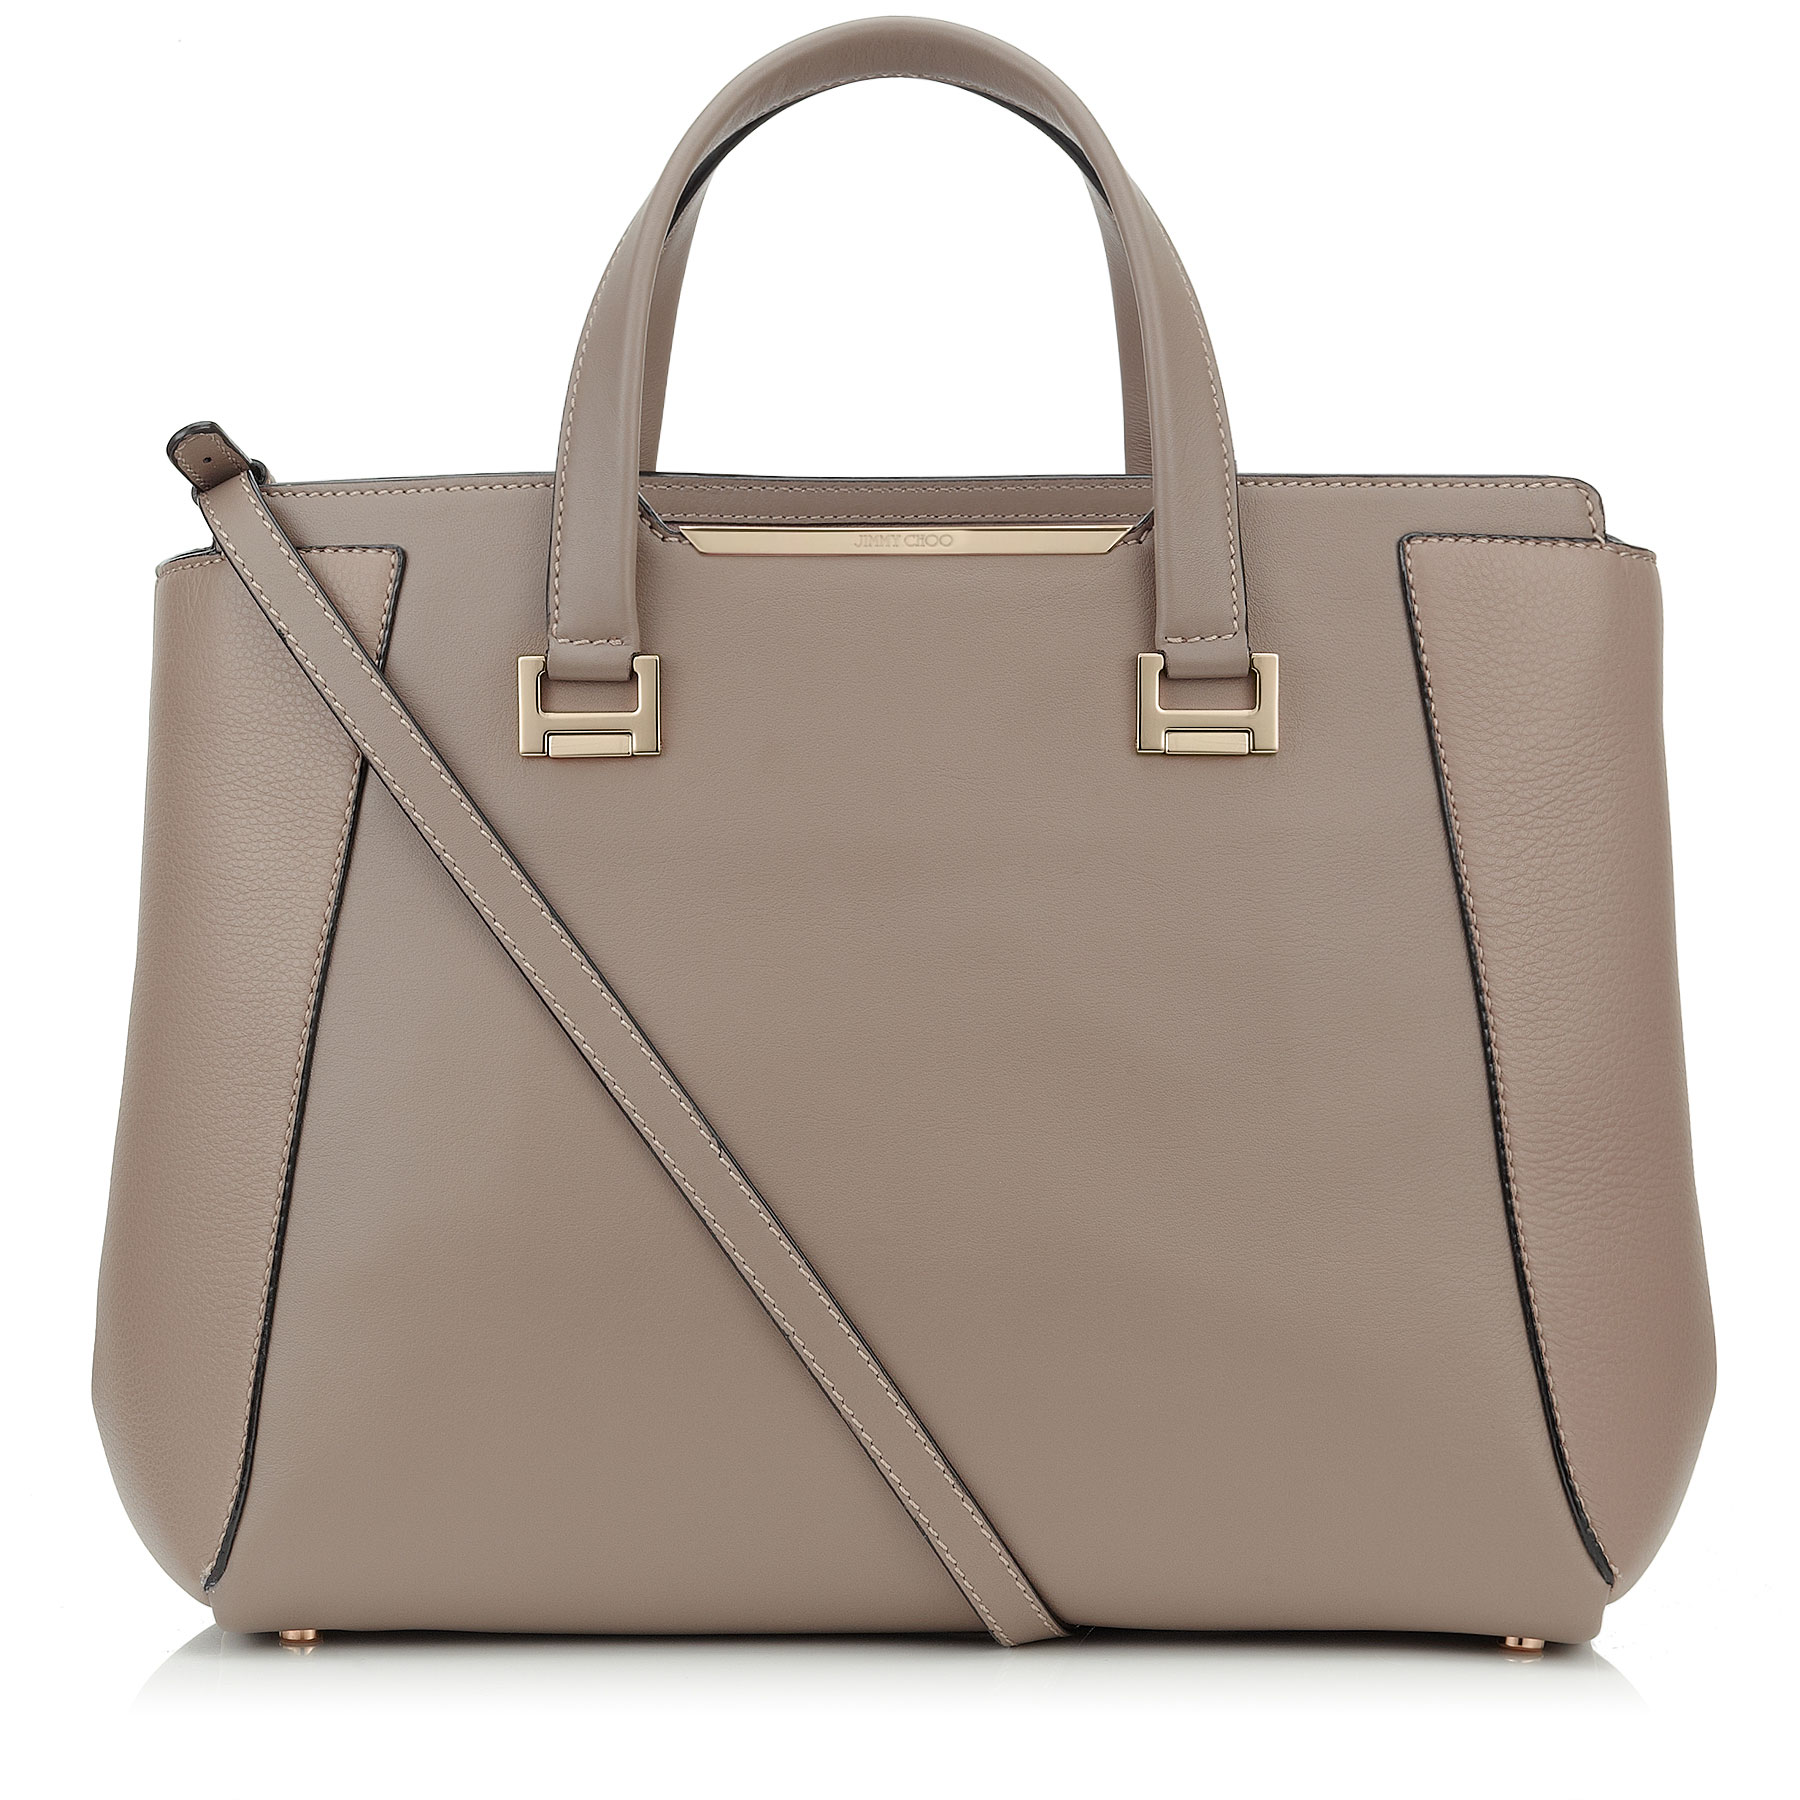 ALFIE L Musk Soft Smooth and Soft Calf Leather Tote Bag